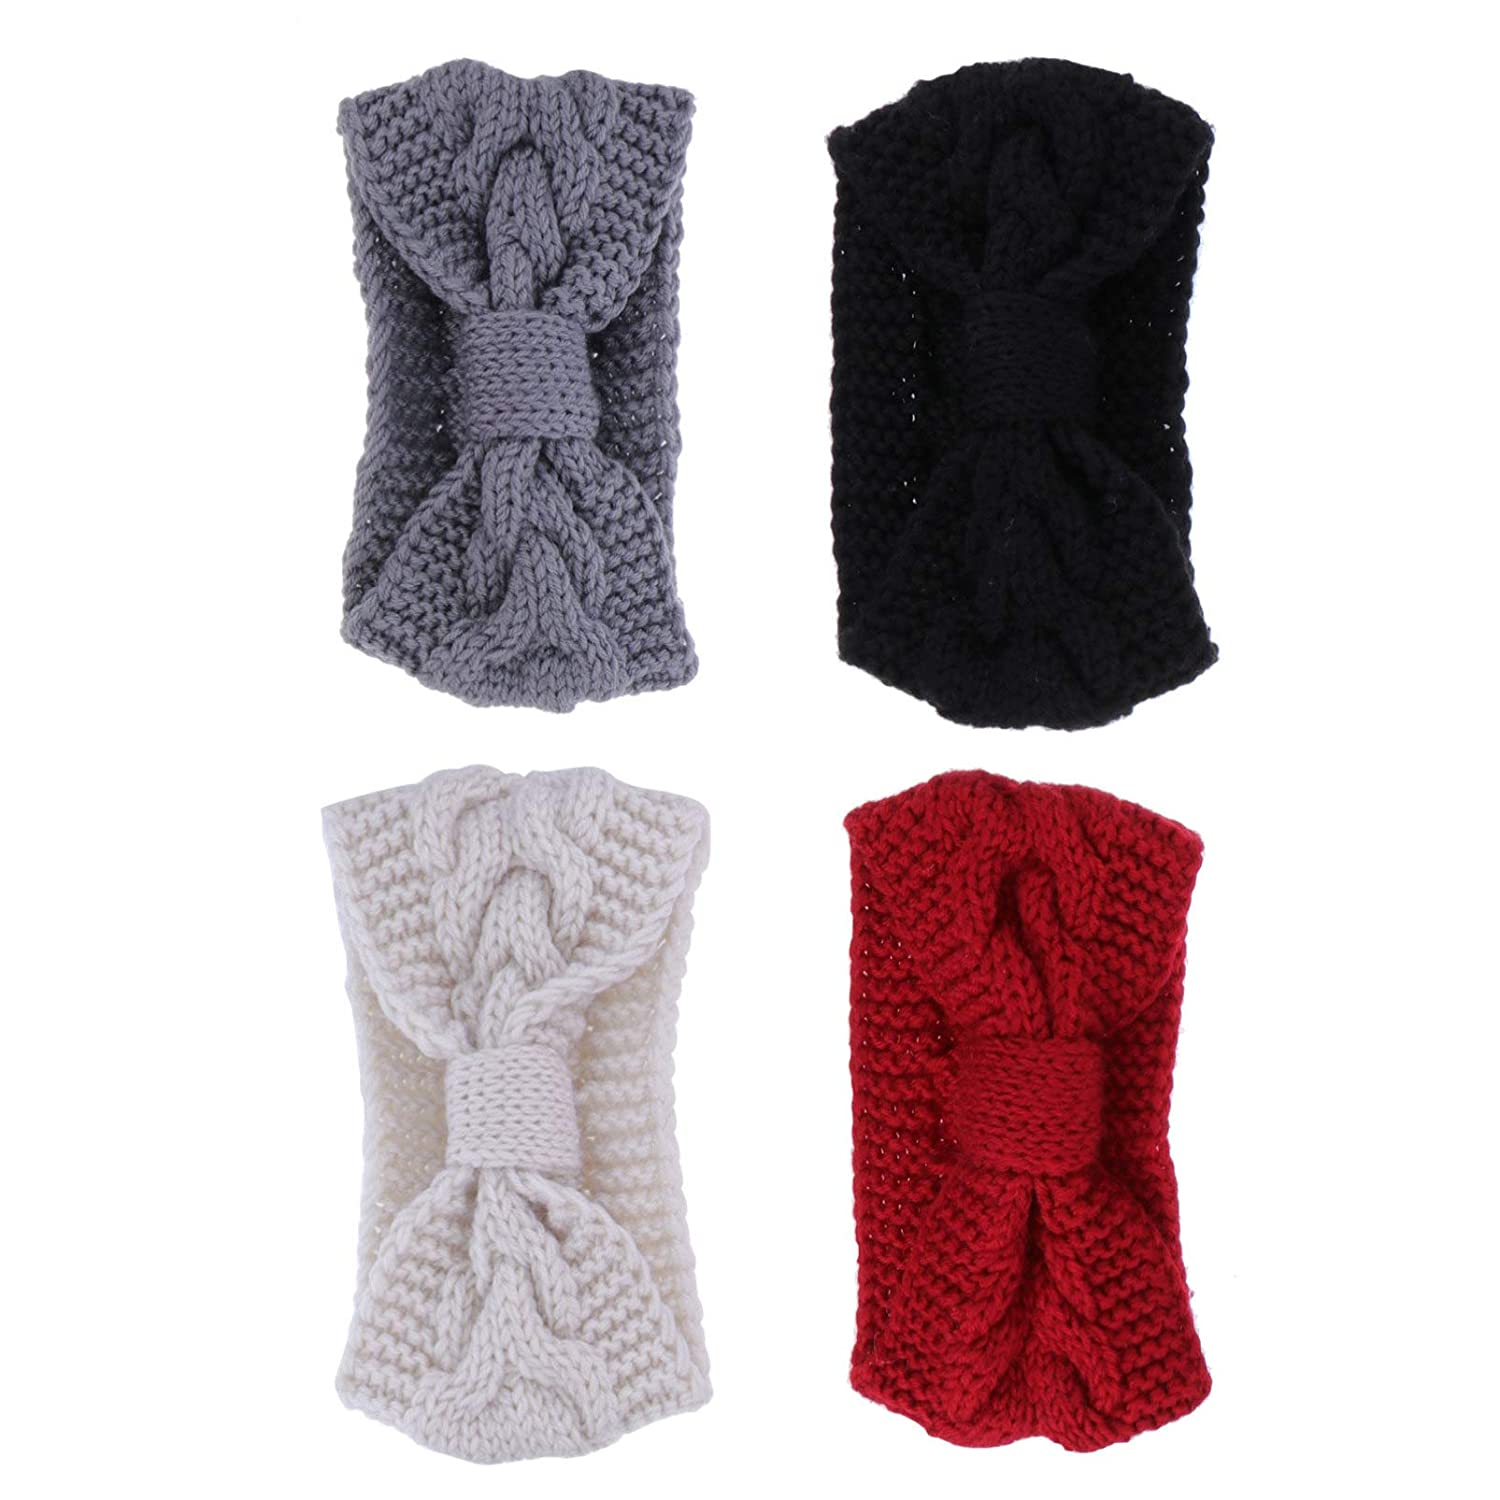 FRCOLOR 4pcs Knitted Headbands Crochet Elastic Bow Headwrap with Buttons Winter Ear Warmer Hairband for Women